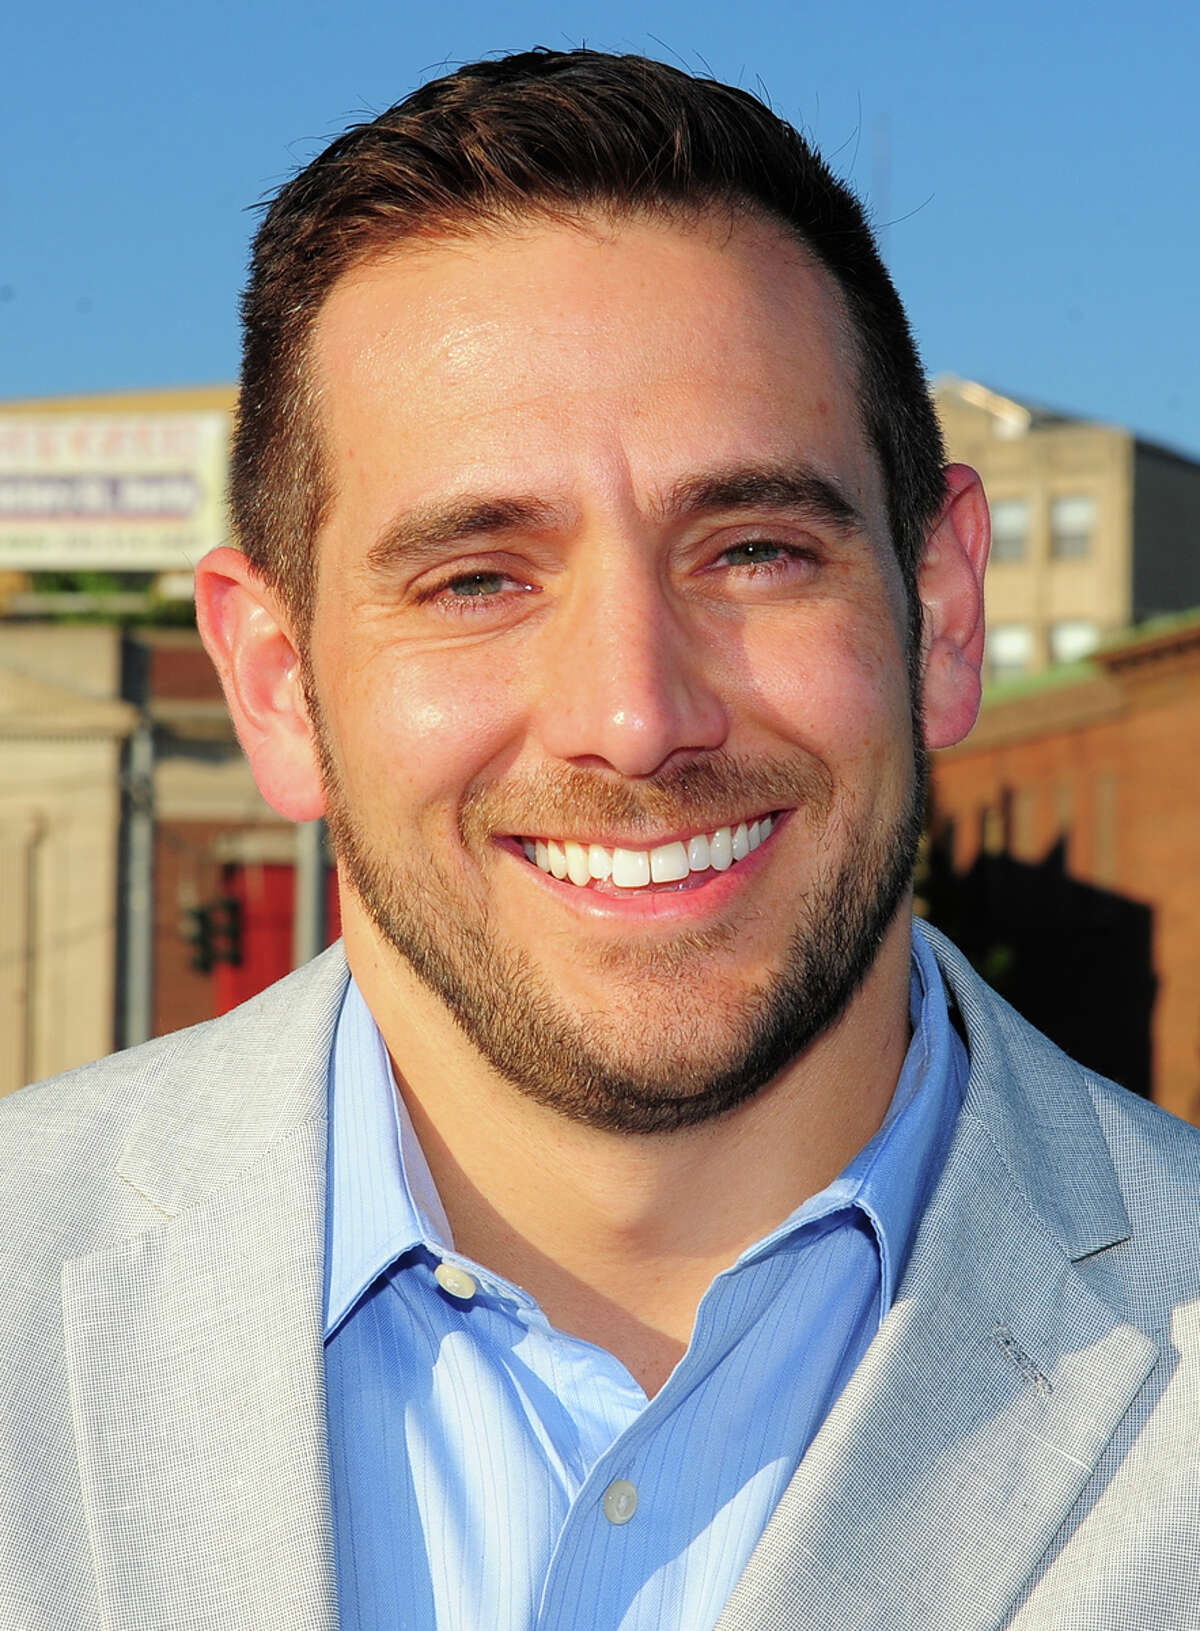 Derby native J.R. Romano, the newly elected state GOP chairman, with Derby in the background on Wednesday.